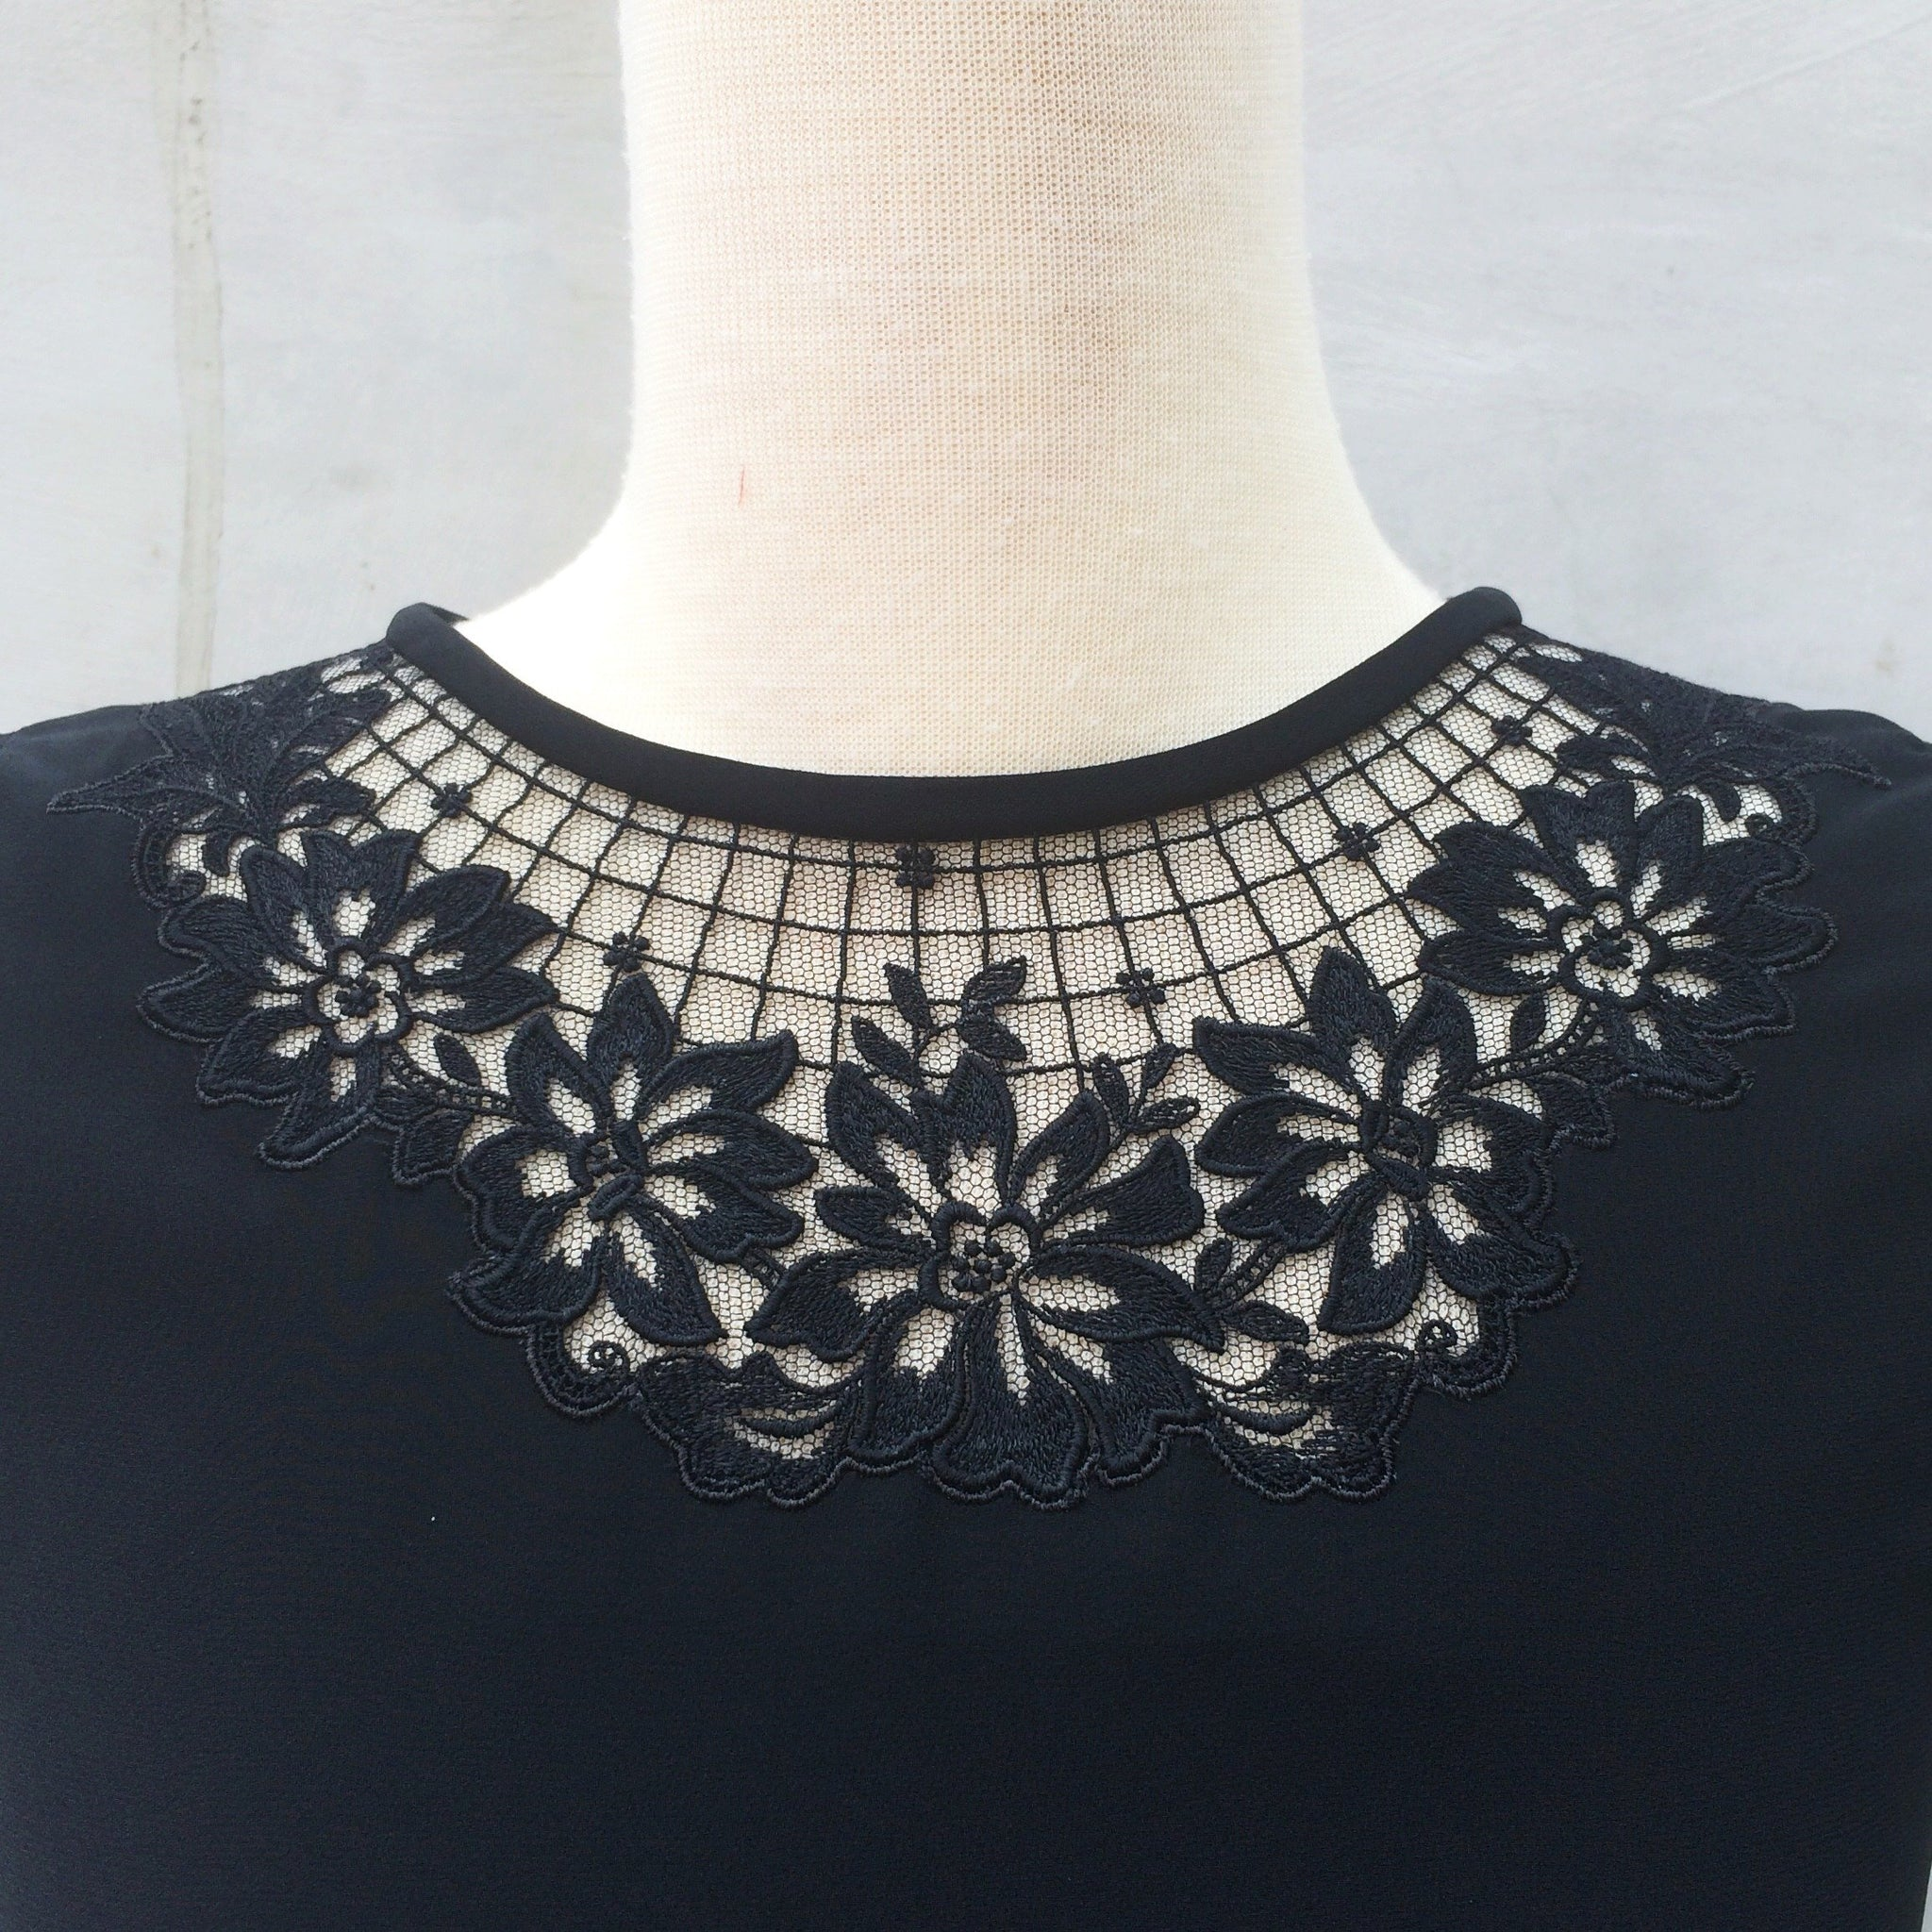 Dark Beauty | Vintage 1970s 1980s floral Laced cut-out neckline collar Black Beauty flirty skirt Dress